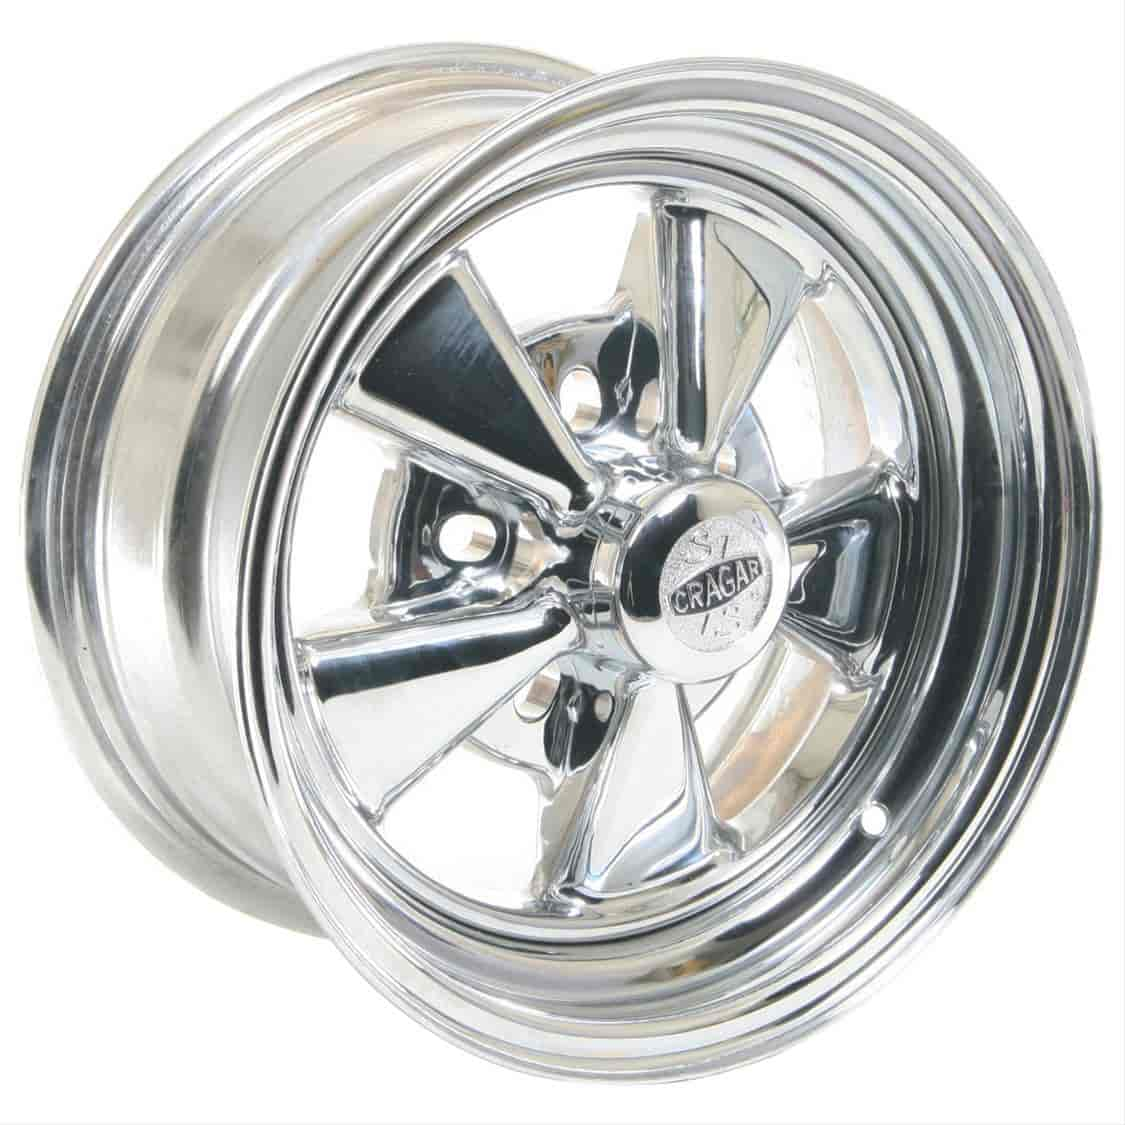 Cragar 61816 - Cragar 08/61 Series S/S Super Sport Wheels